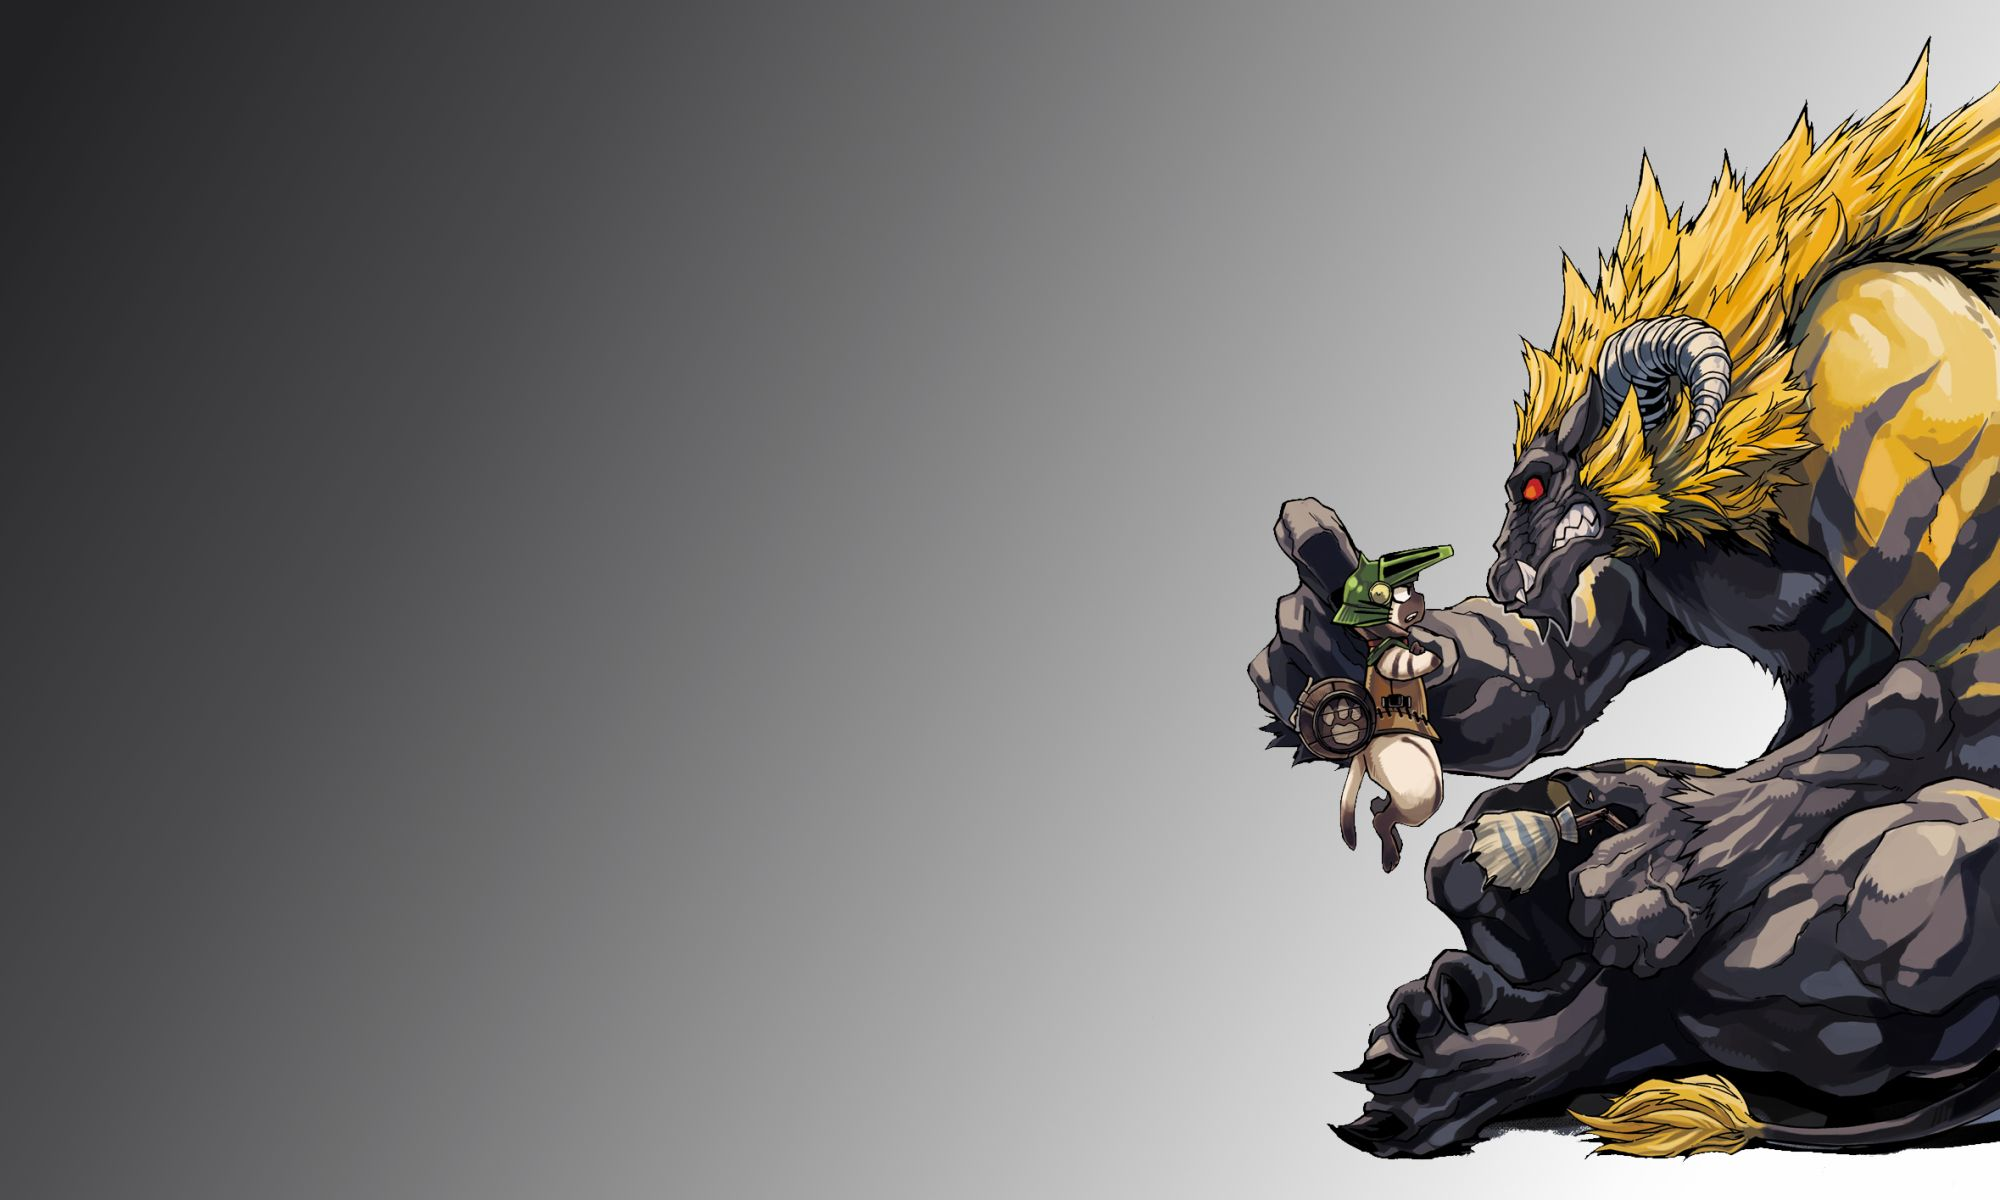 Monster Hunter HD Wallpapers Backgrounds Wallpaper 2000x1200